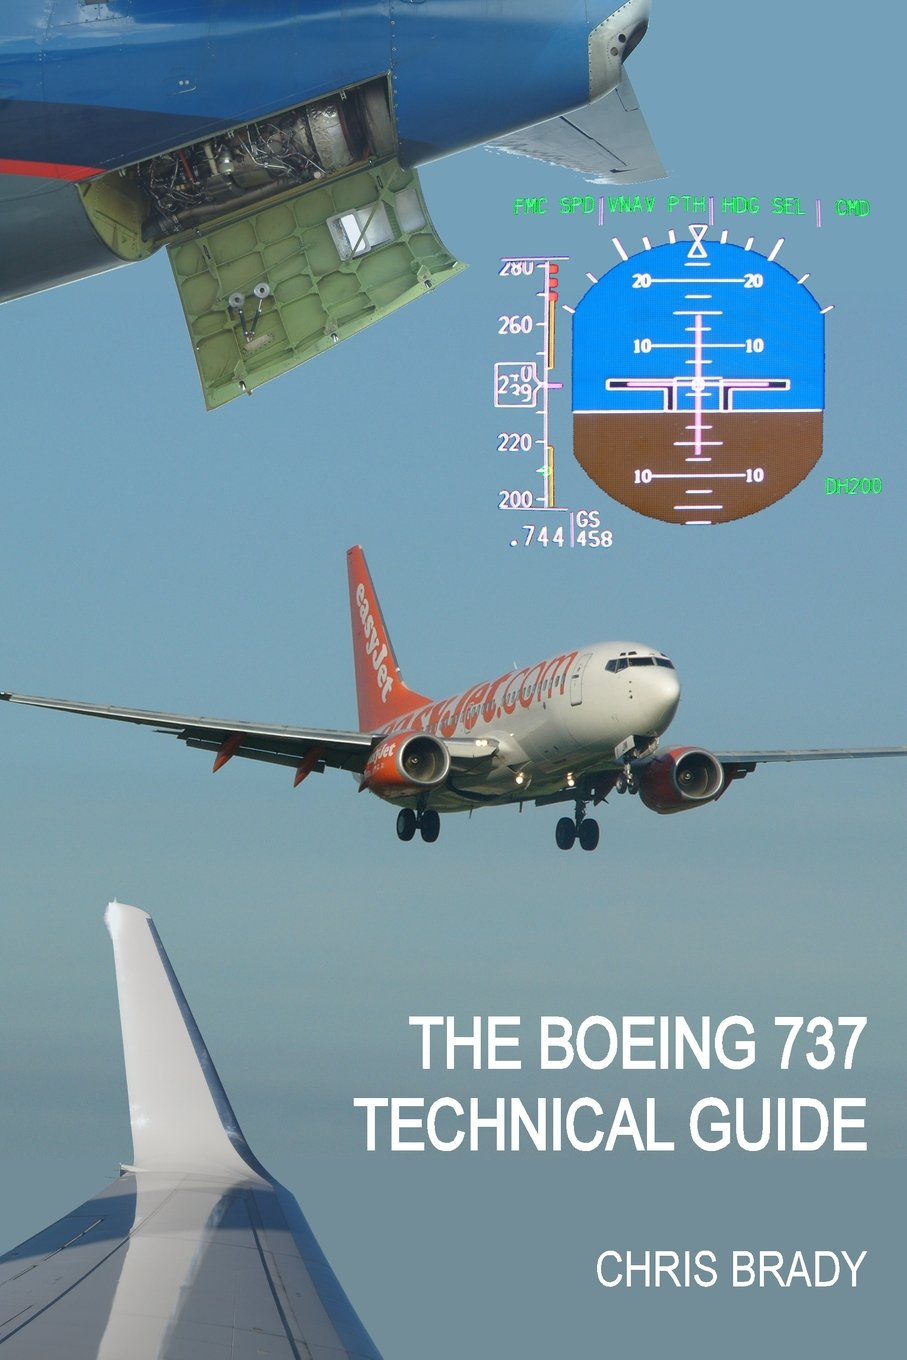 The Boeing 737 Technical Guide (Pocket Budget version): Amazon.co.uk: Chris  Brady: 9781291773187: Books